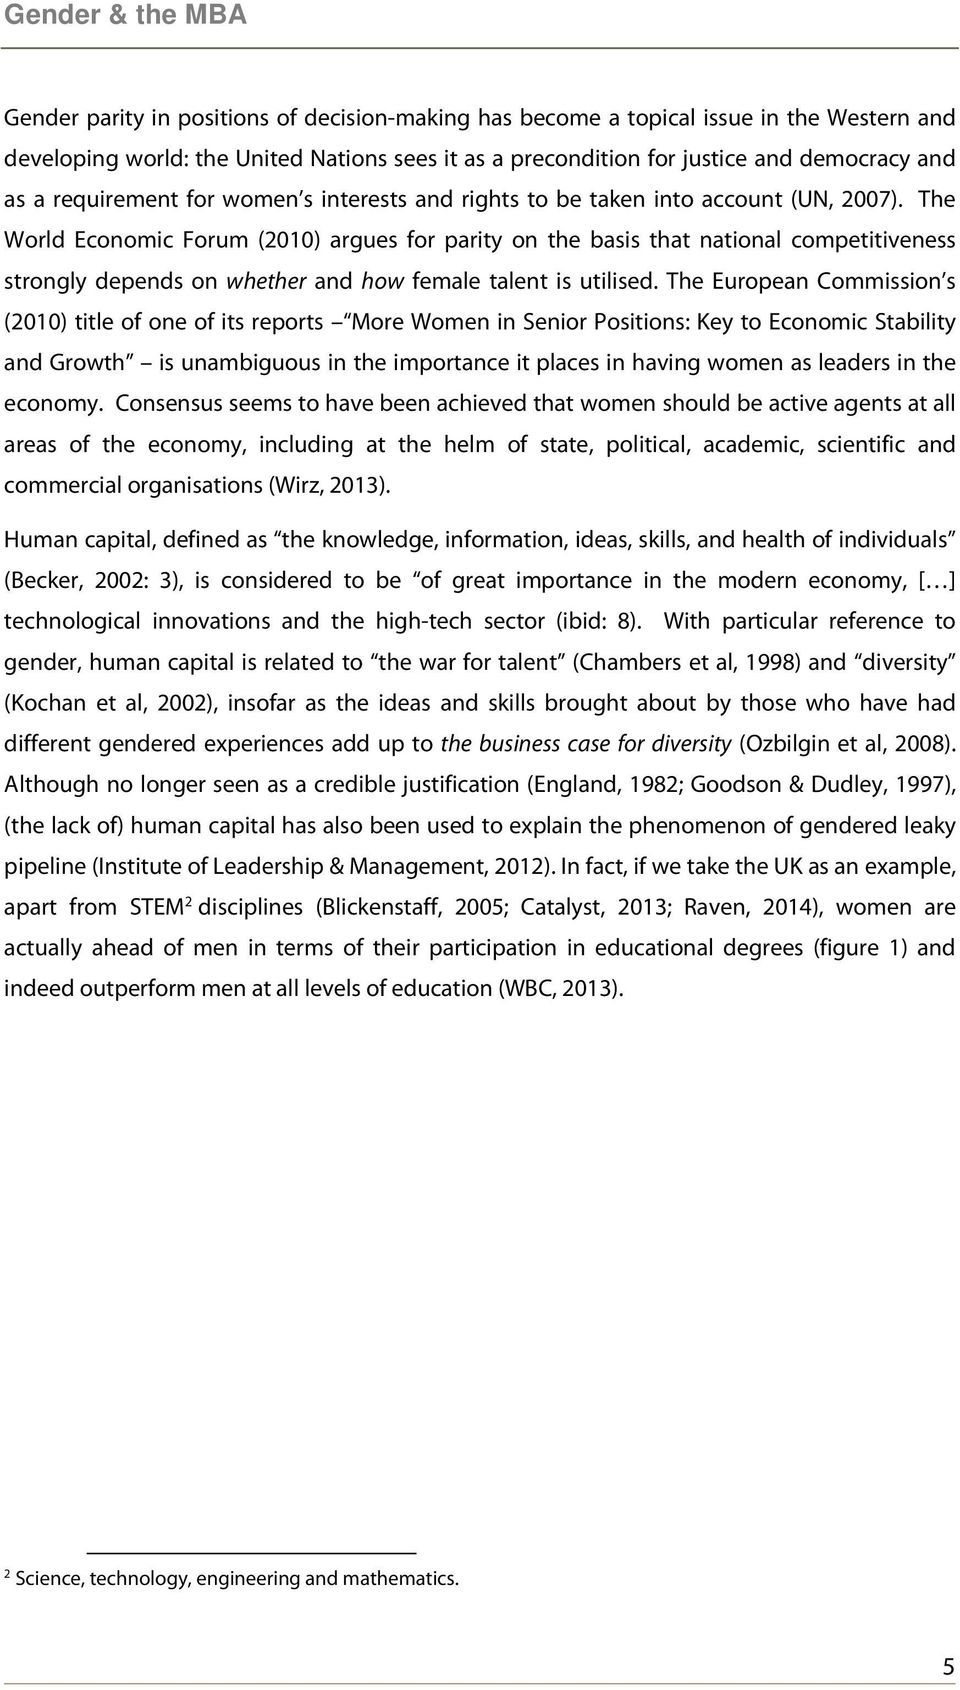 The World Economic Forum (2010) argues for parity on the basis that national competitiveness strongly depends on whether and how female talent is utilised.